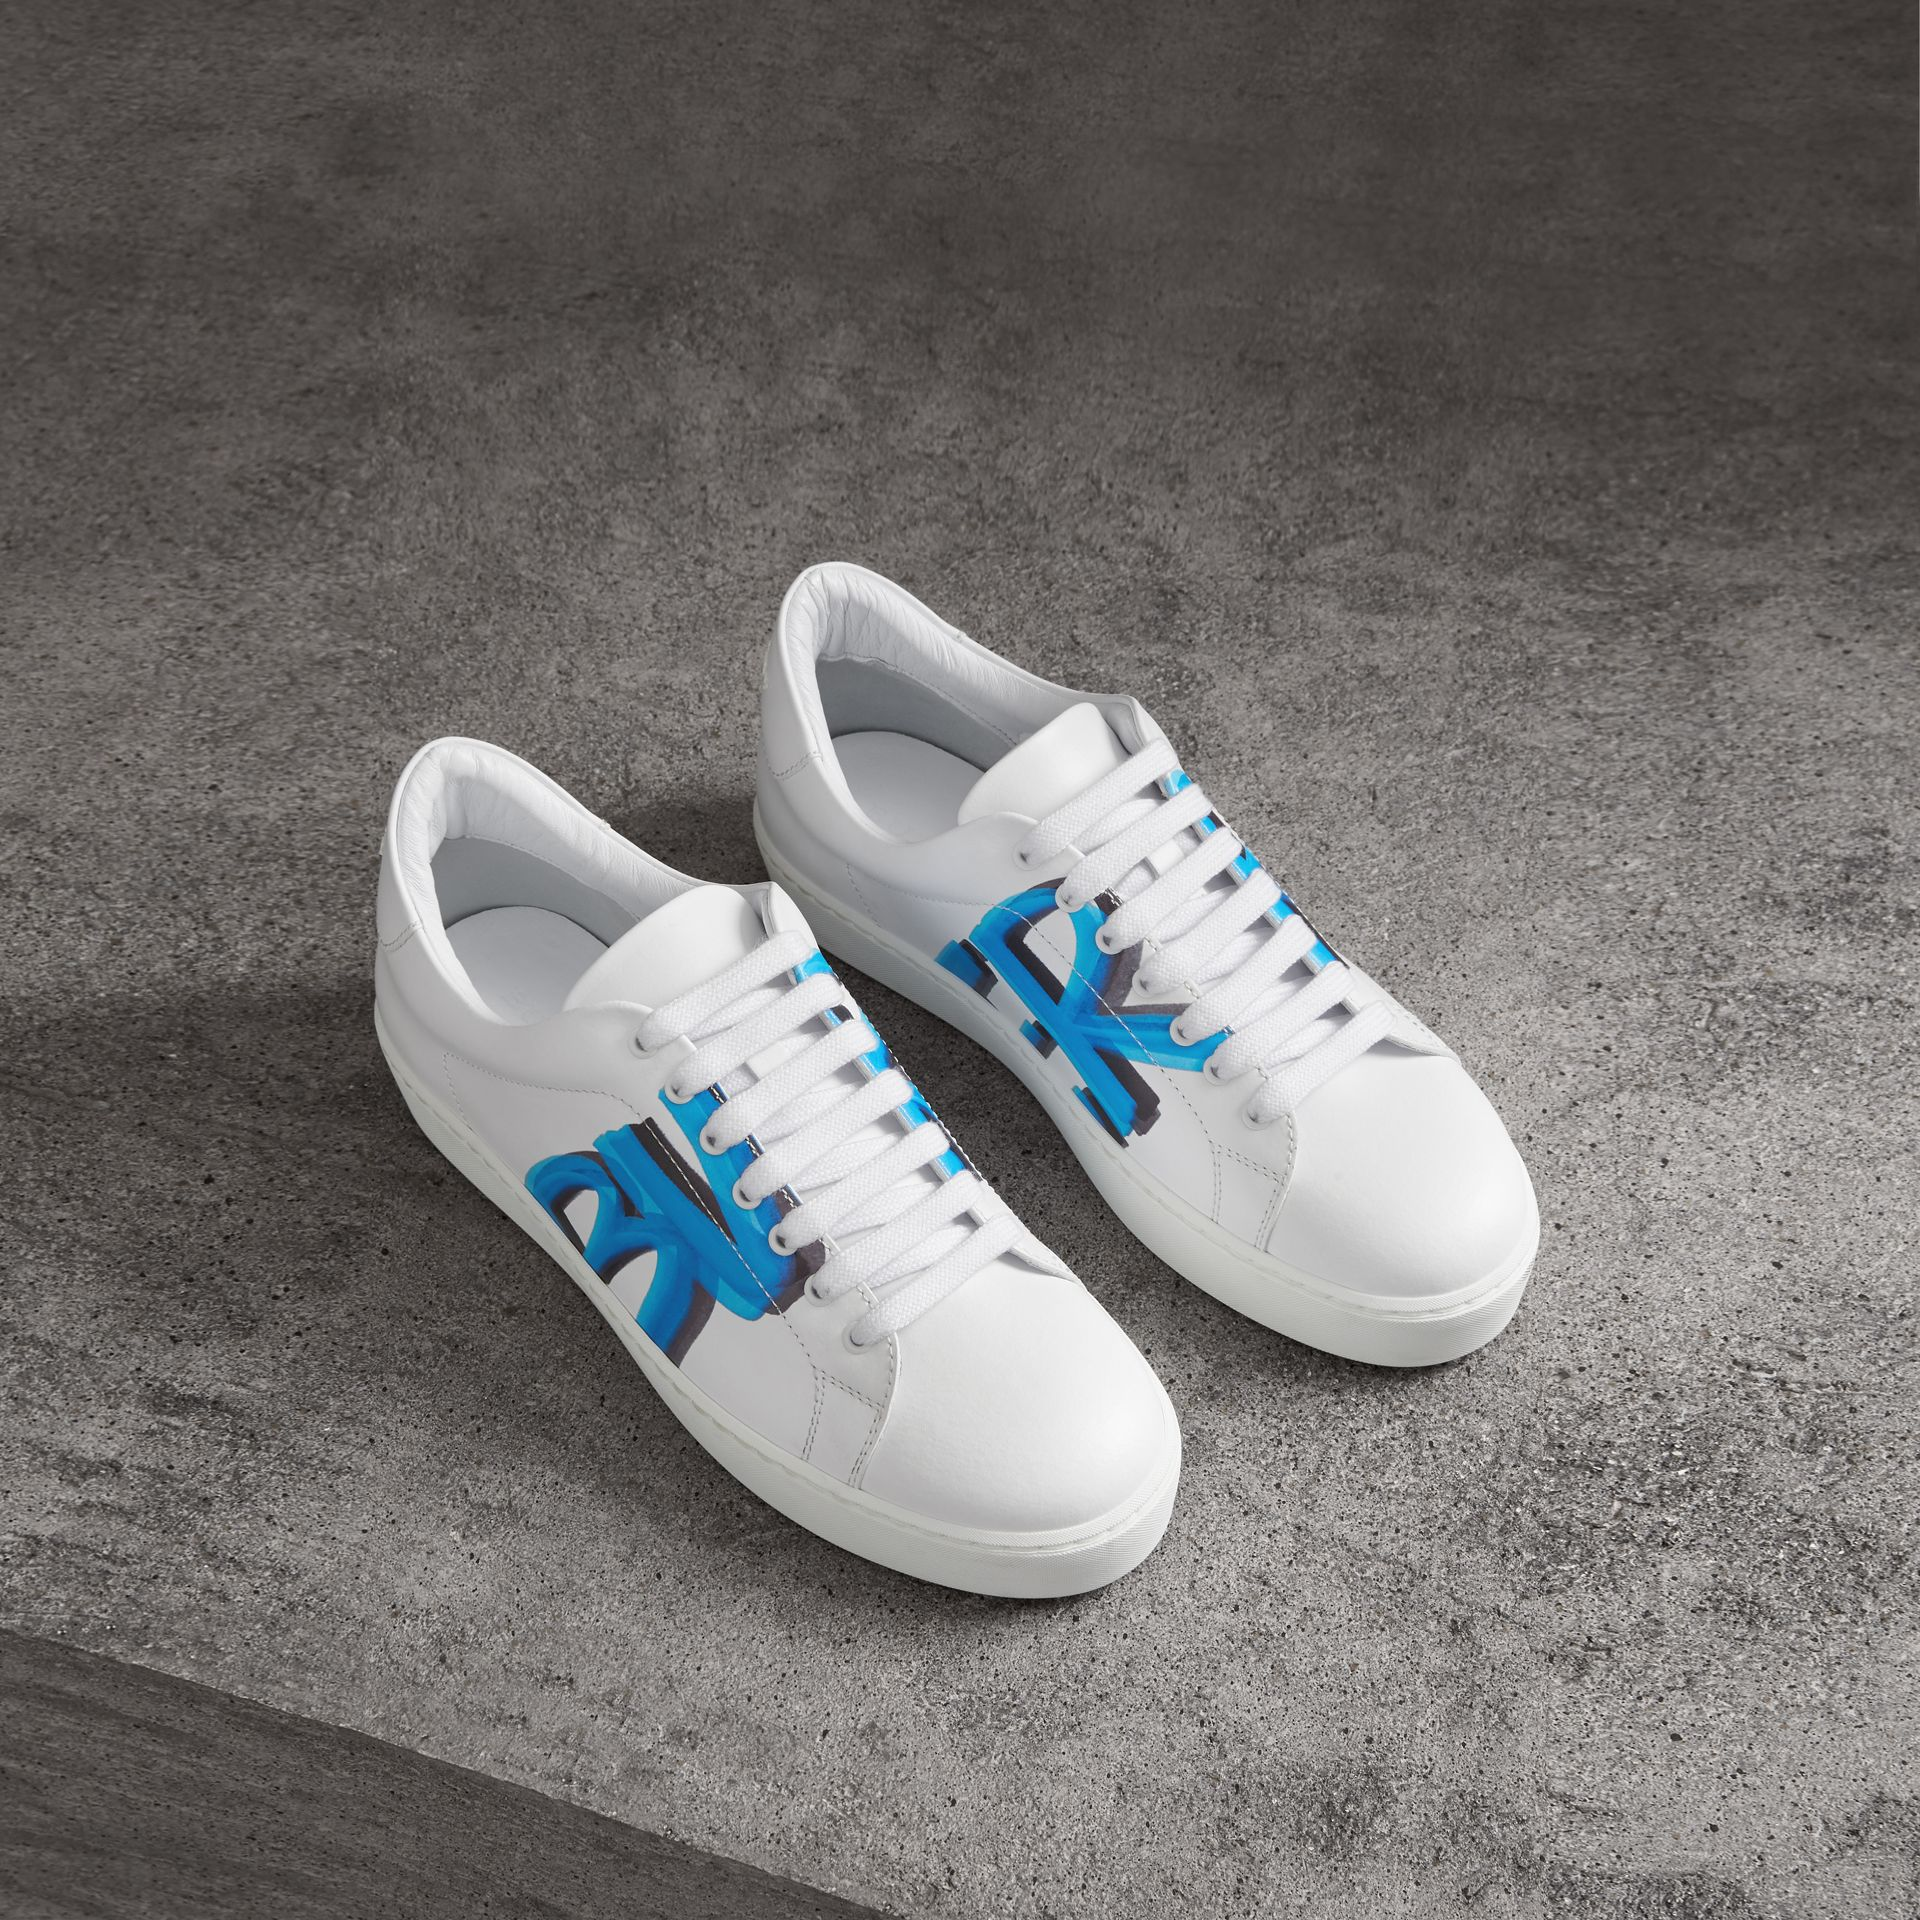 Graffiti Print Leather Sneakers in Bright Sky Blue - Women | Burberry Canada - gallery image 0